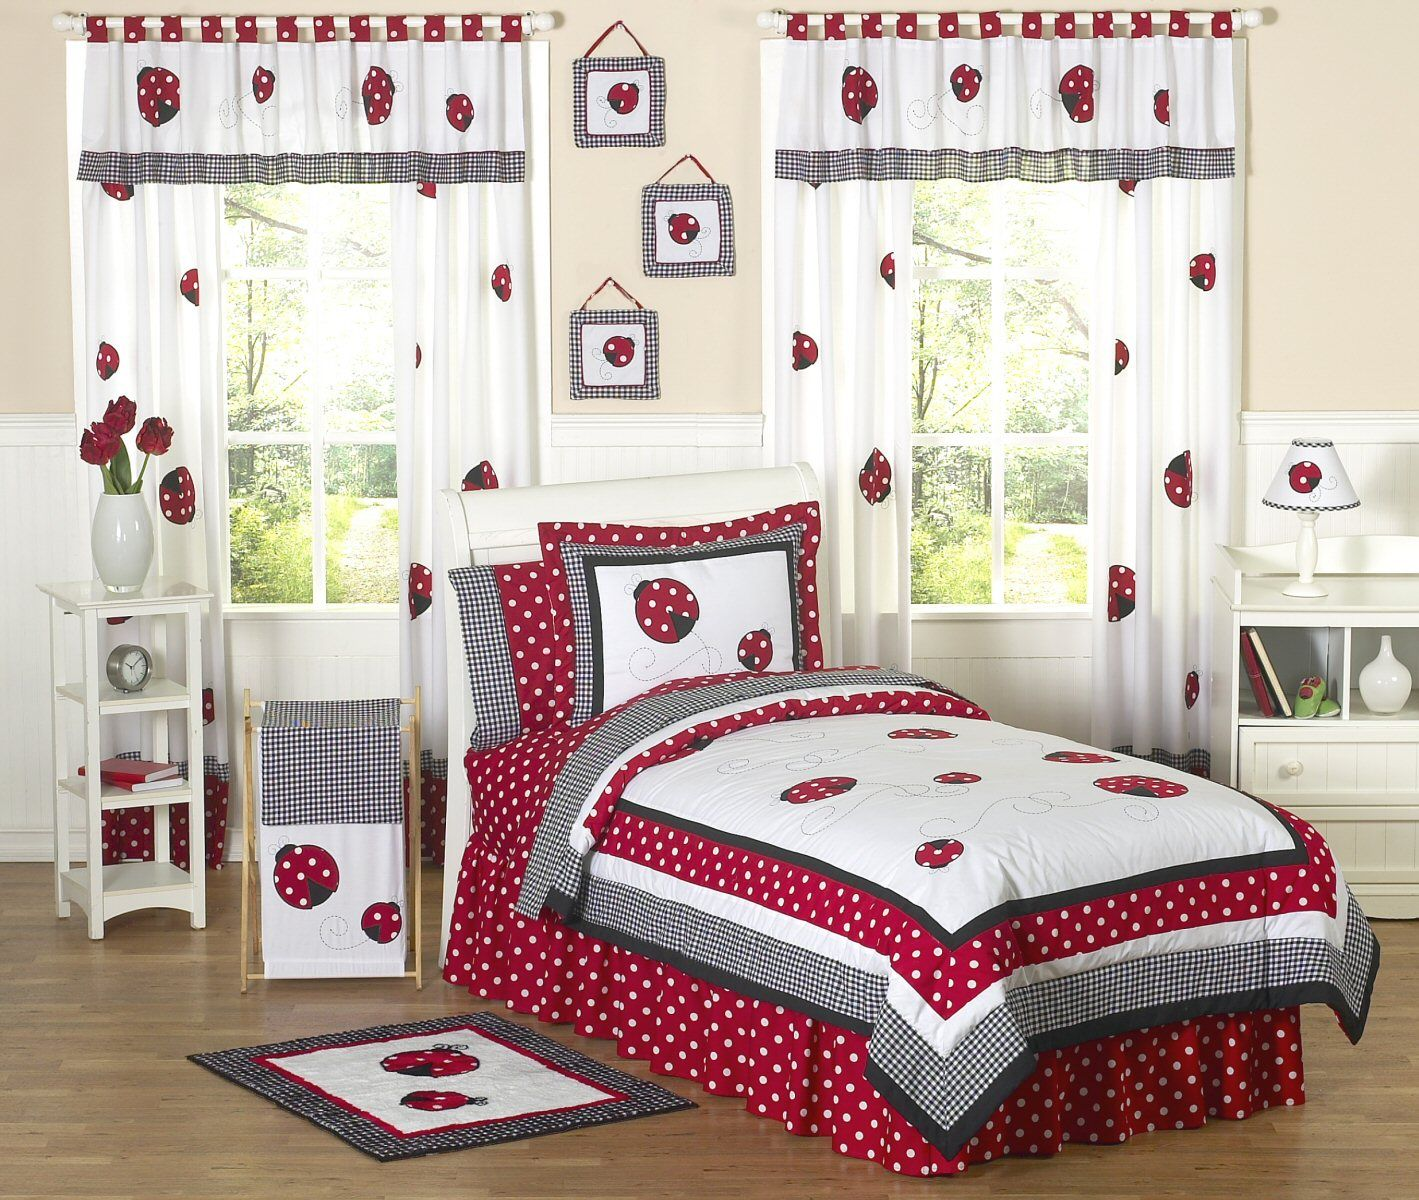 Little Red Ladybug Girls Bedding Twin or Full/Queen Kids Comforter ...